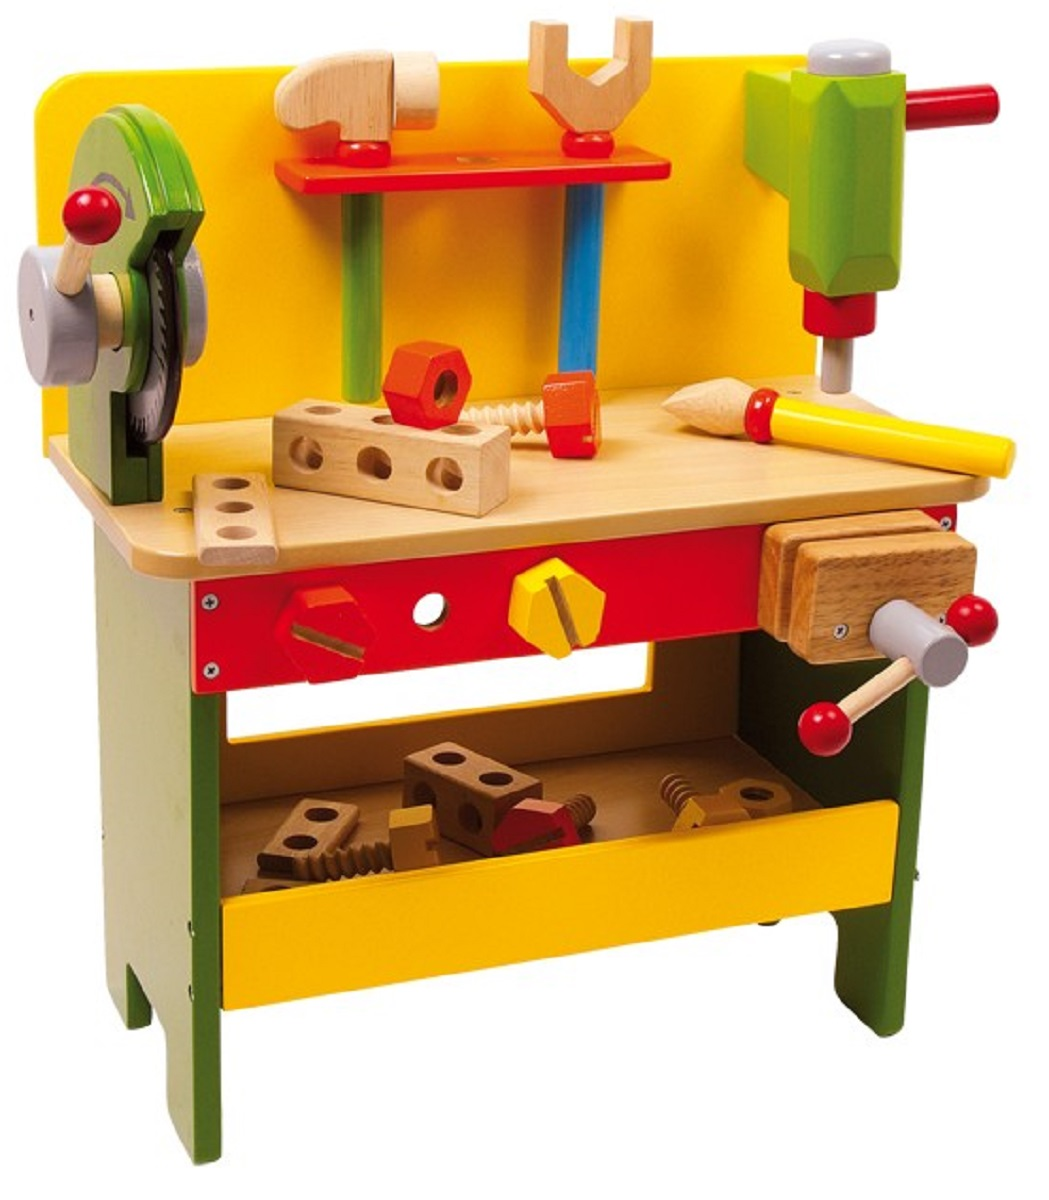 Woodworking Plans Childrens Wooden Tool Bench Pdf Plans